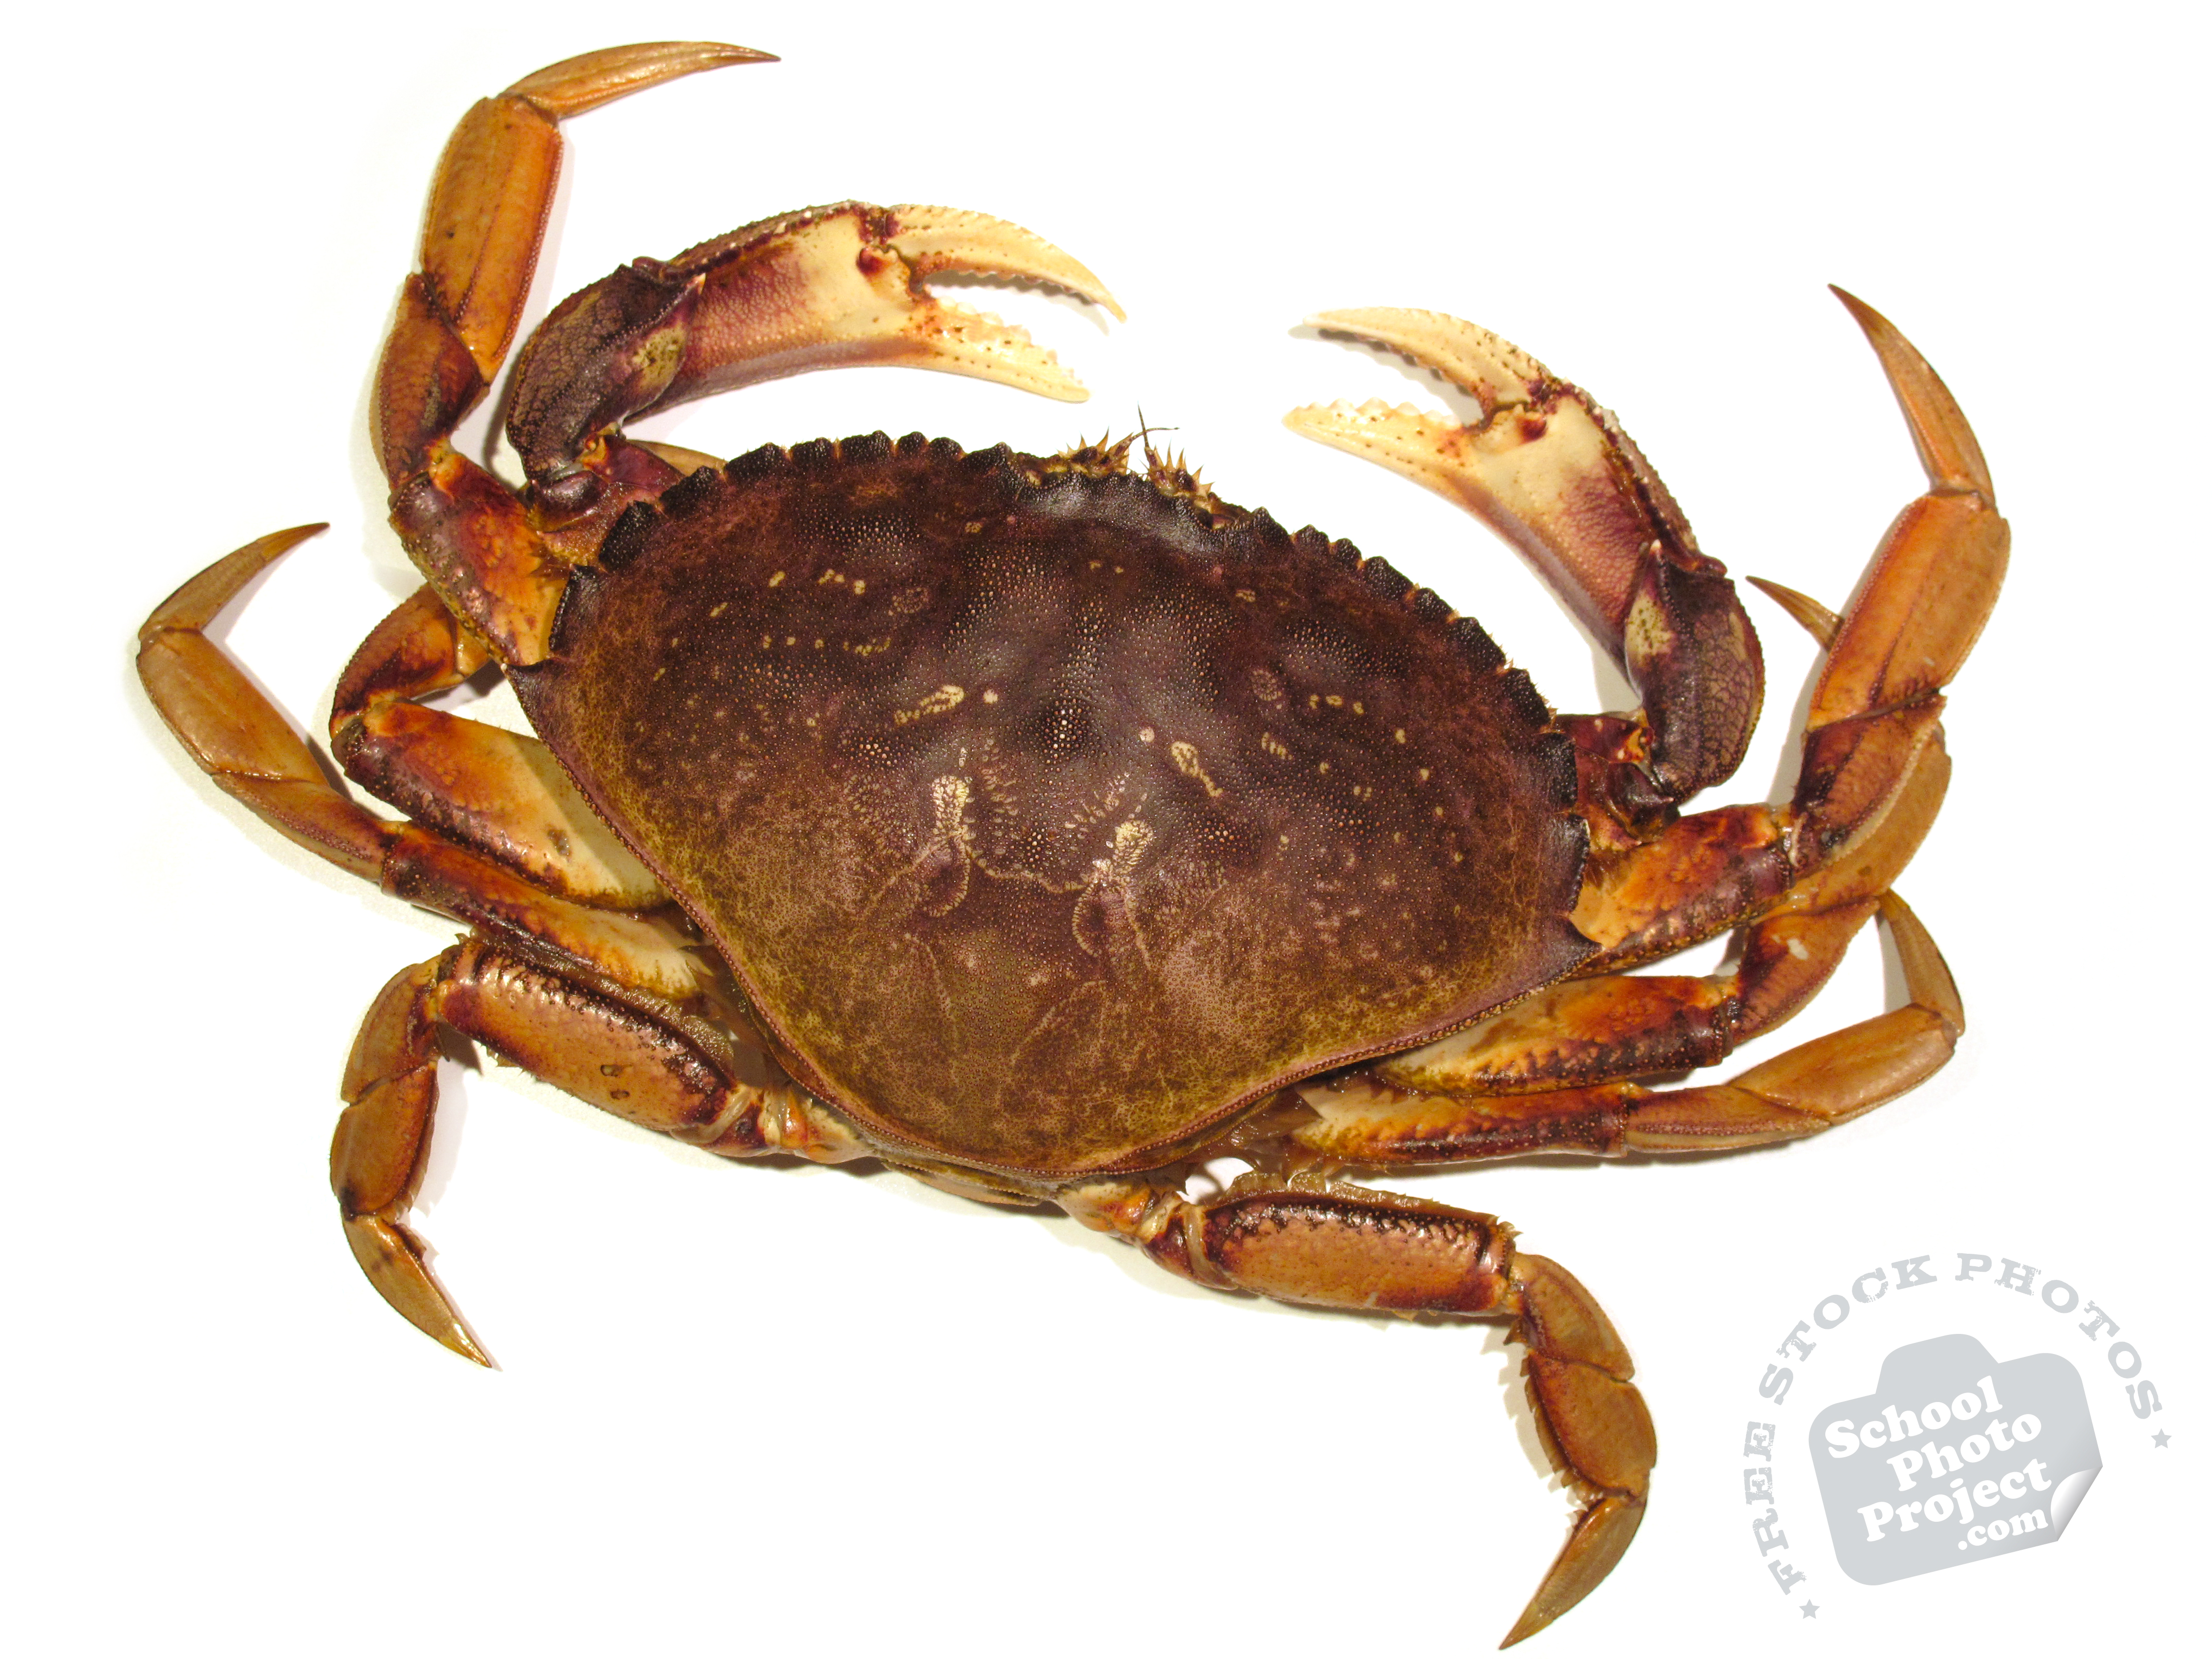 Crab, FREE Stock Photo, Image, Picture: Dungeness Crab, Royalty-Free Animal Stock Photography